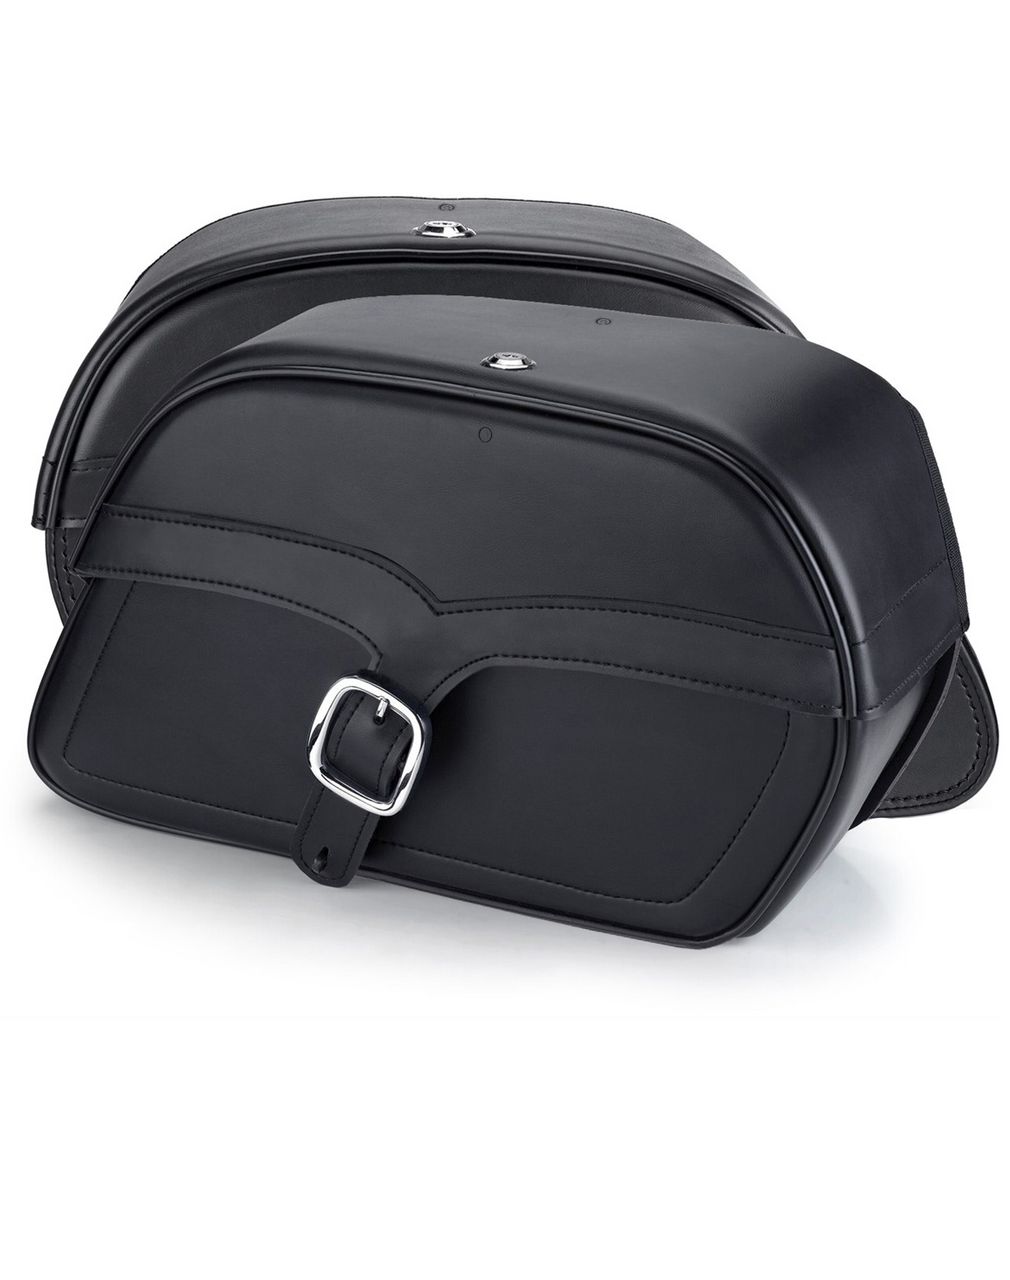 Viking Charger Single Strap Large Motorcycle Saddlebags For Harley Dyna Low Rider FXDL Both Bags View